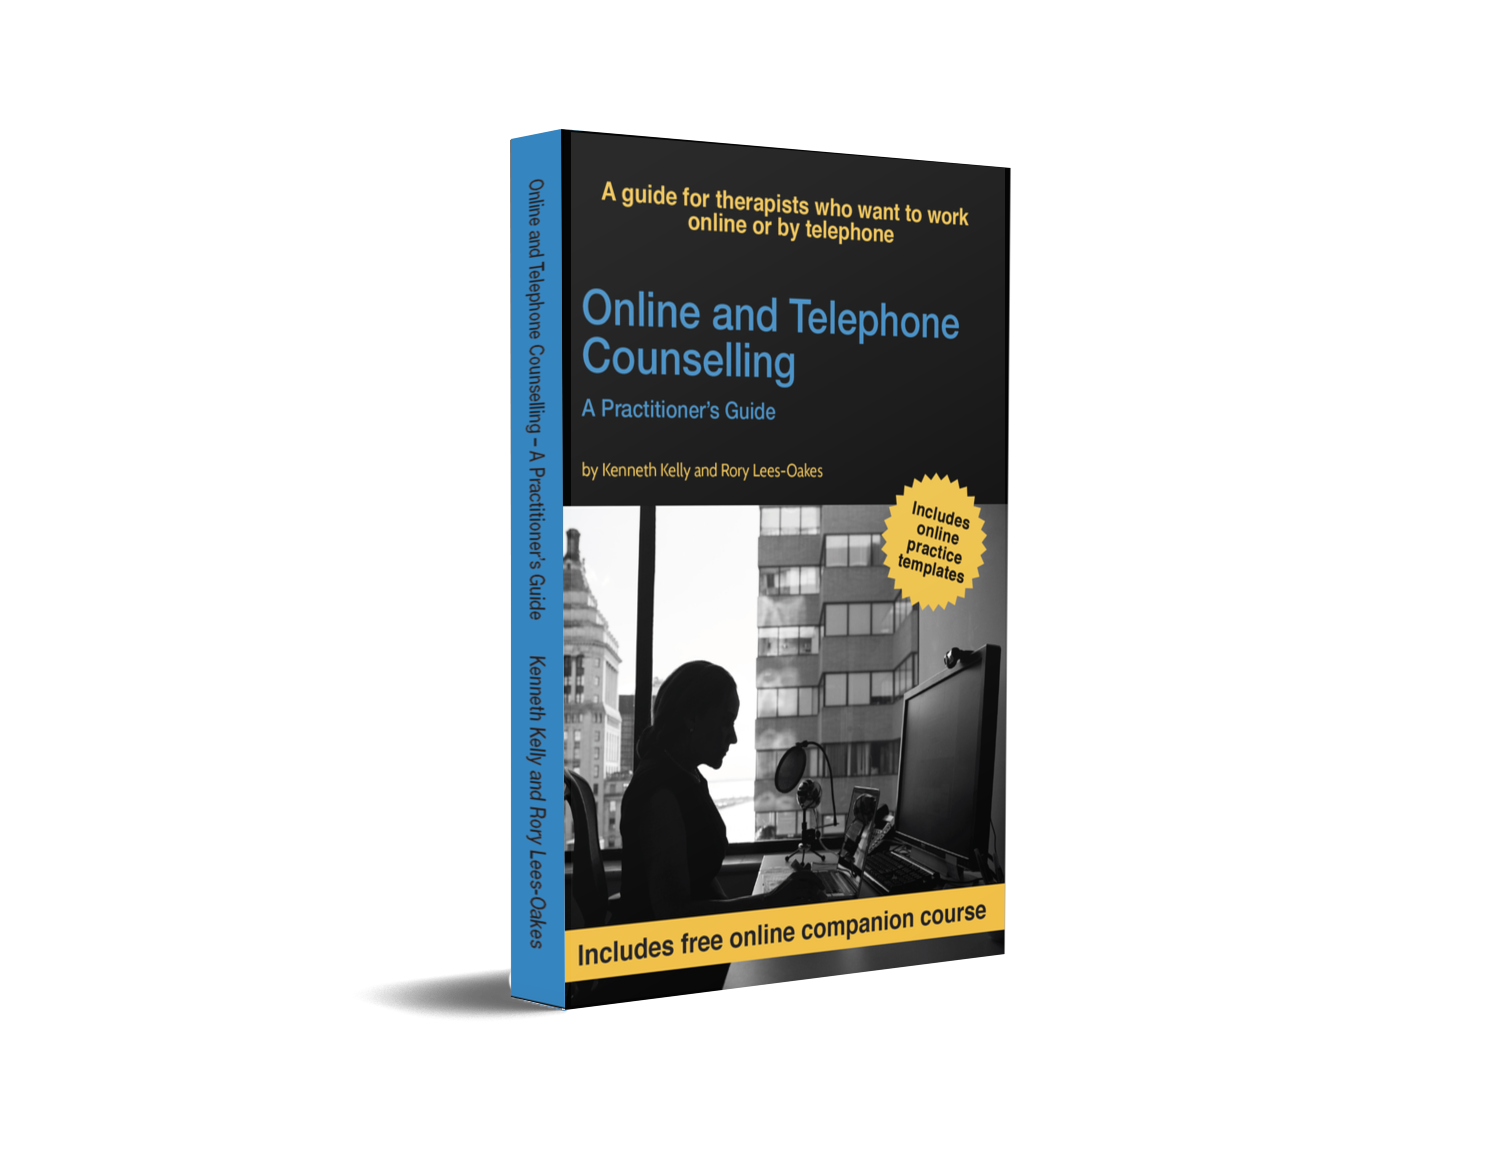 Online and Telephone counselling book